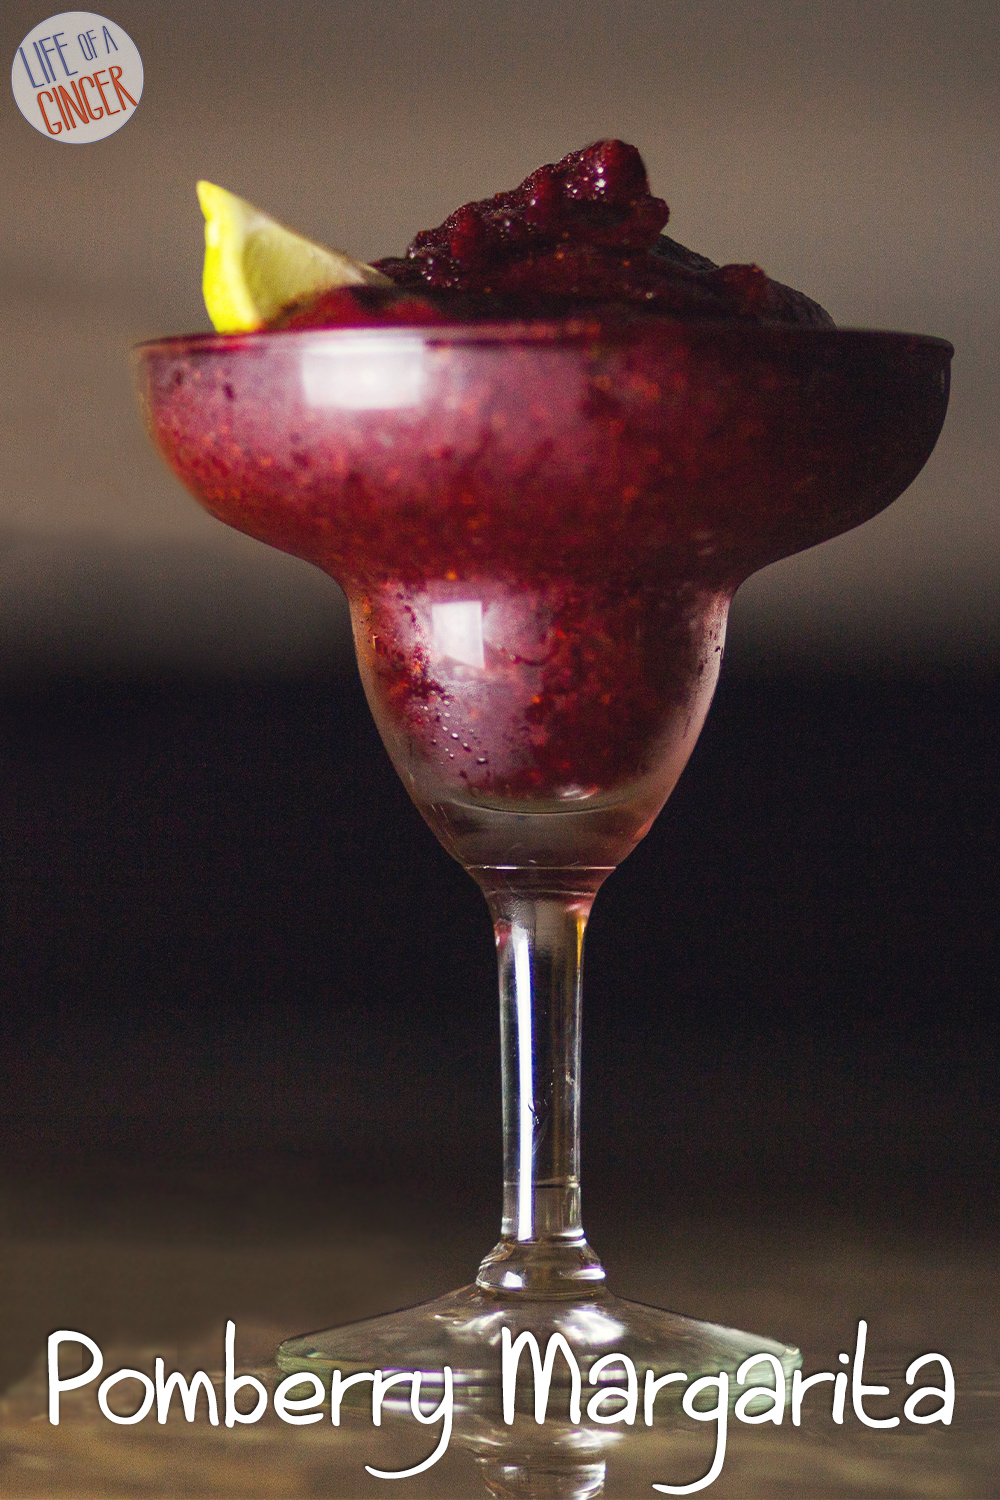 Pomberry Margarita